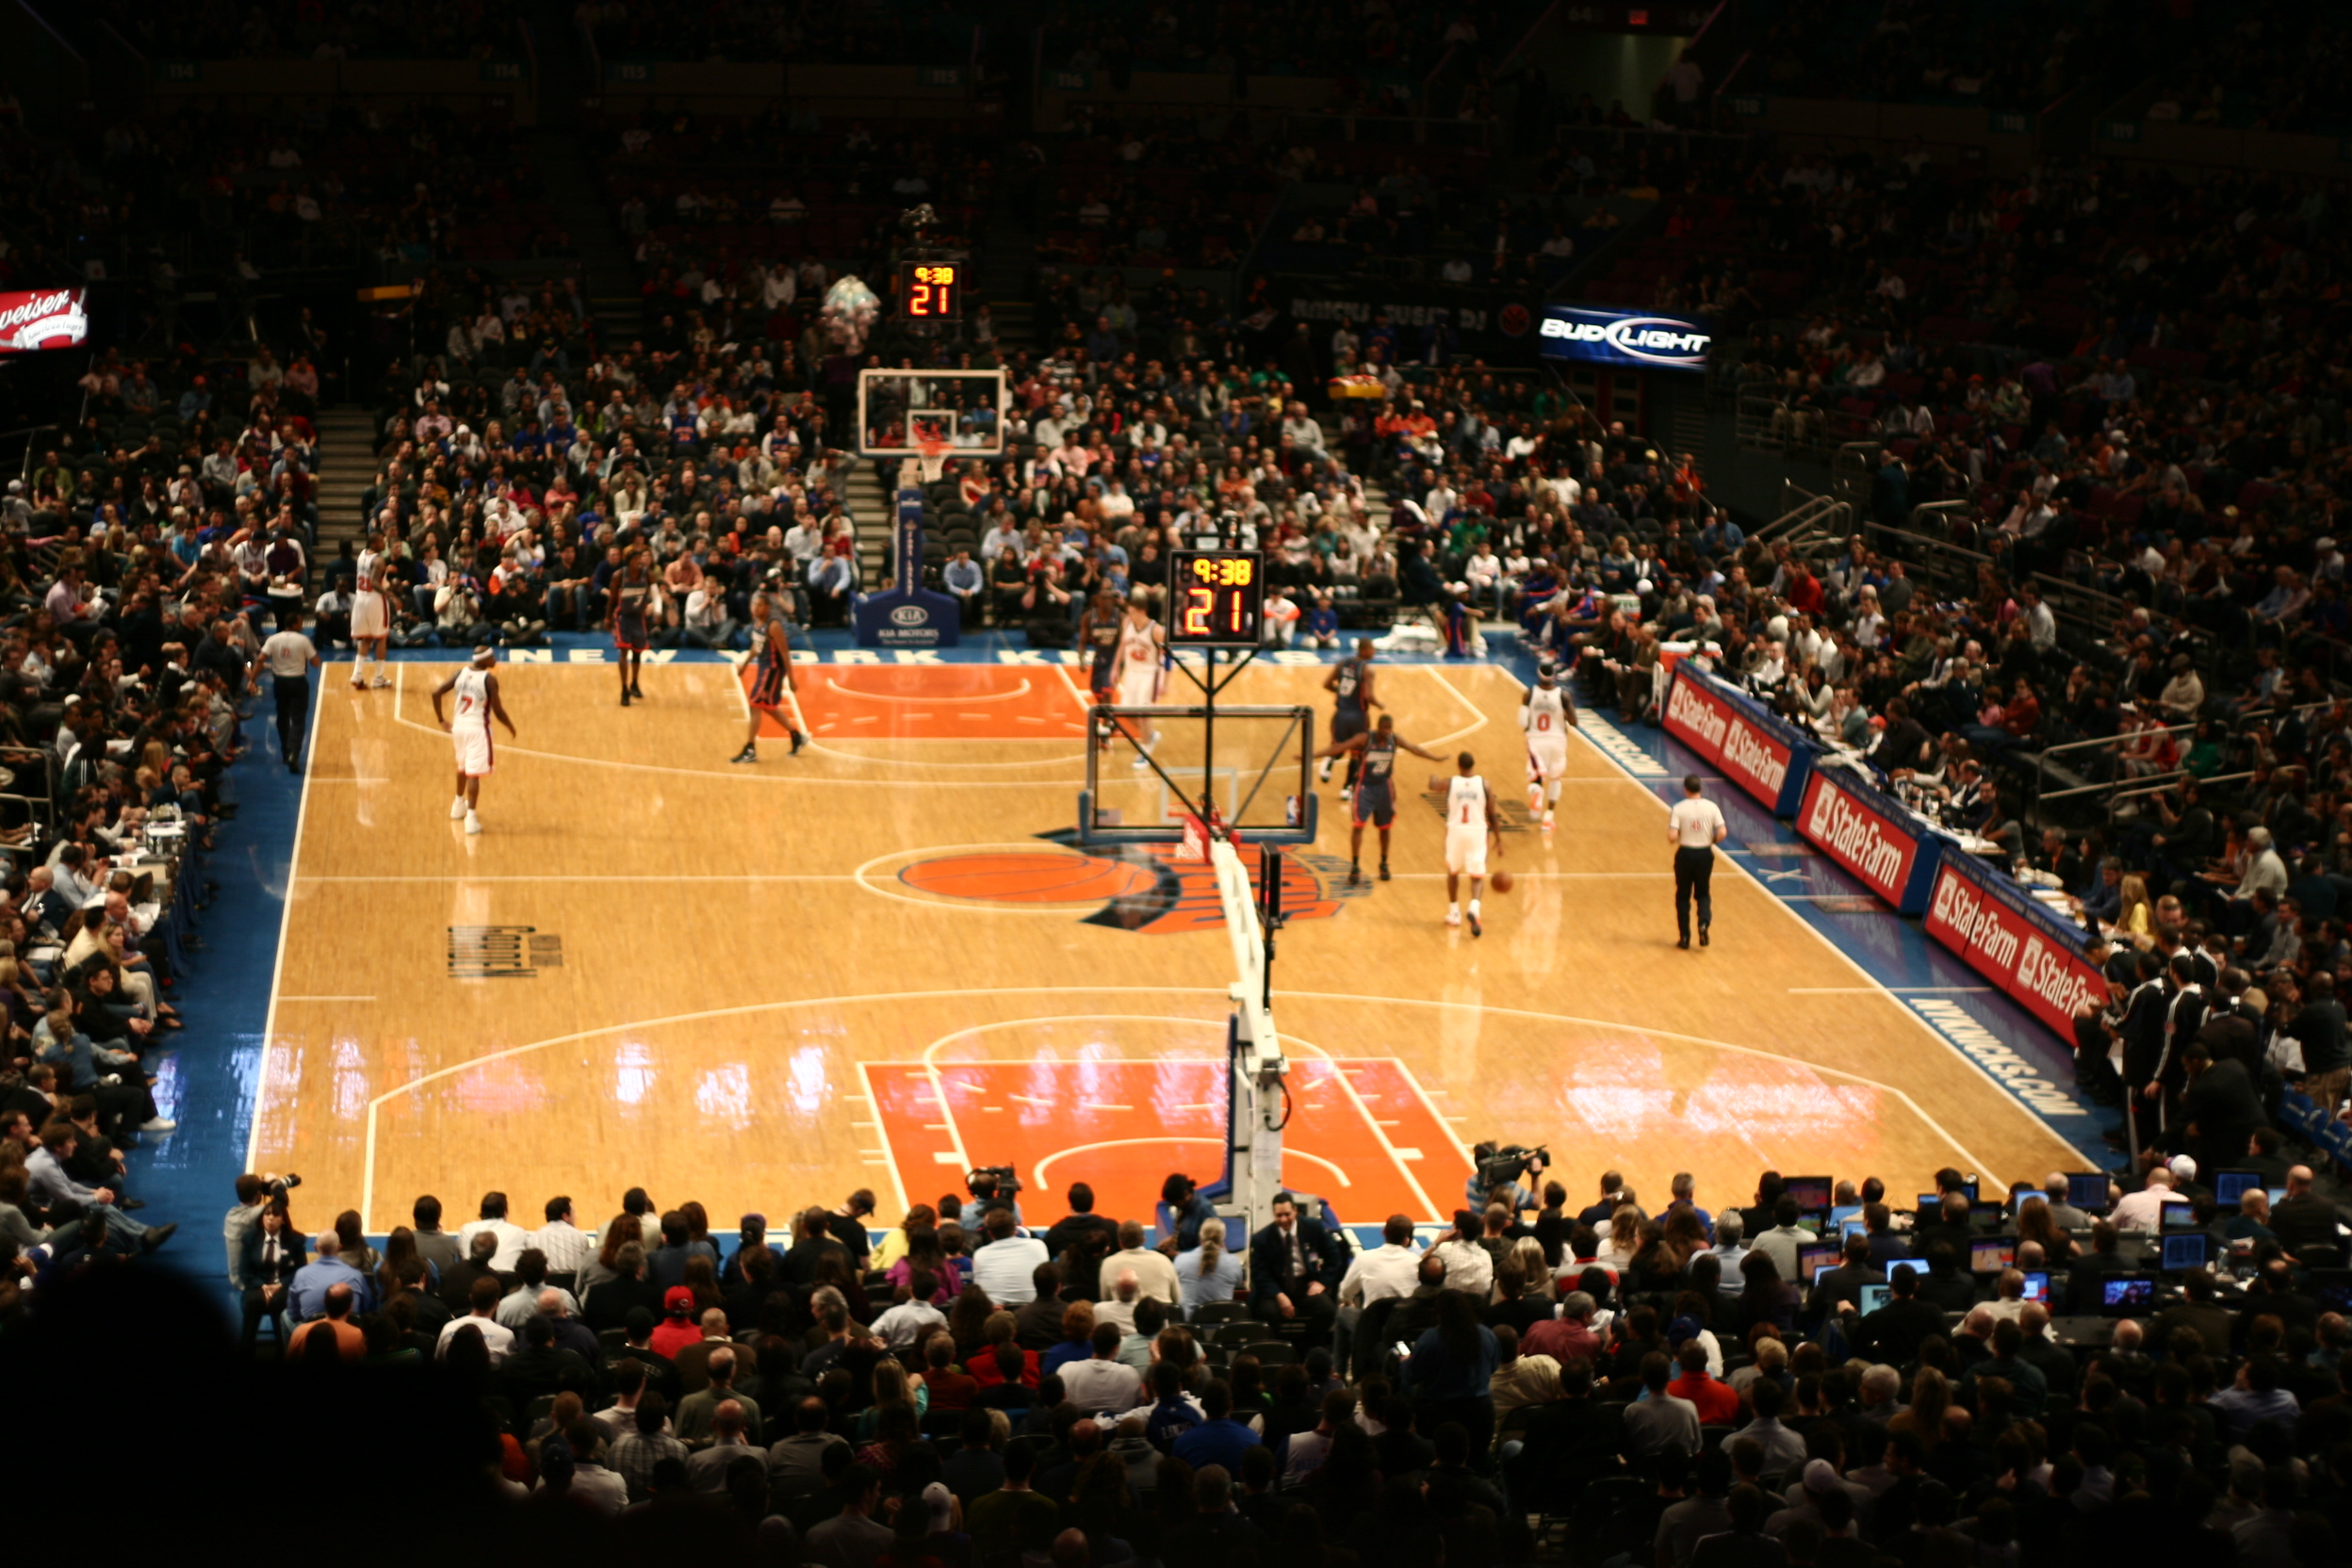 Madison square garden basketball game flickr photo sharing Madison square garden basketball